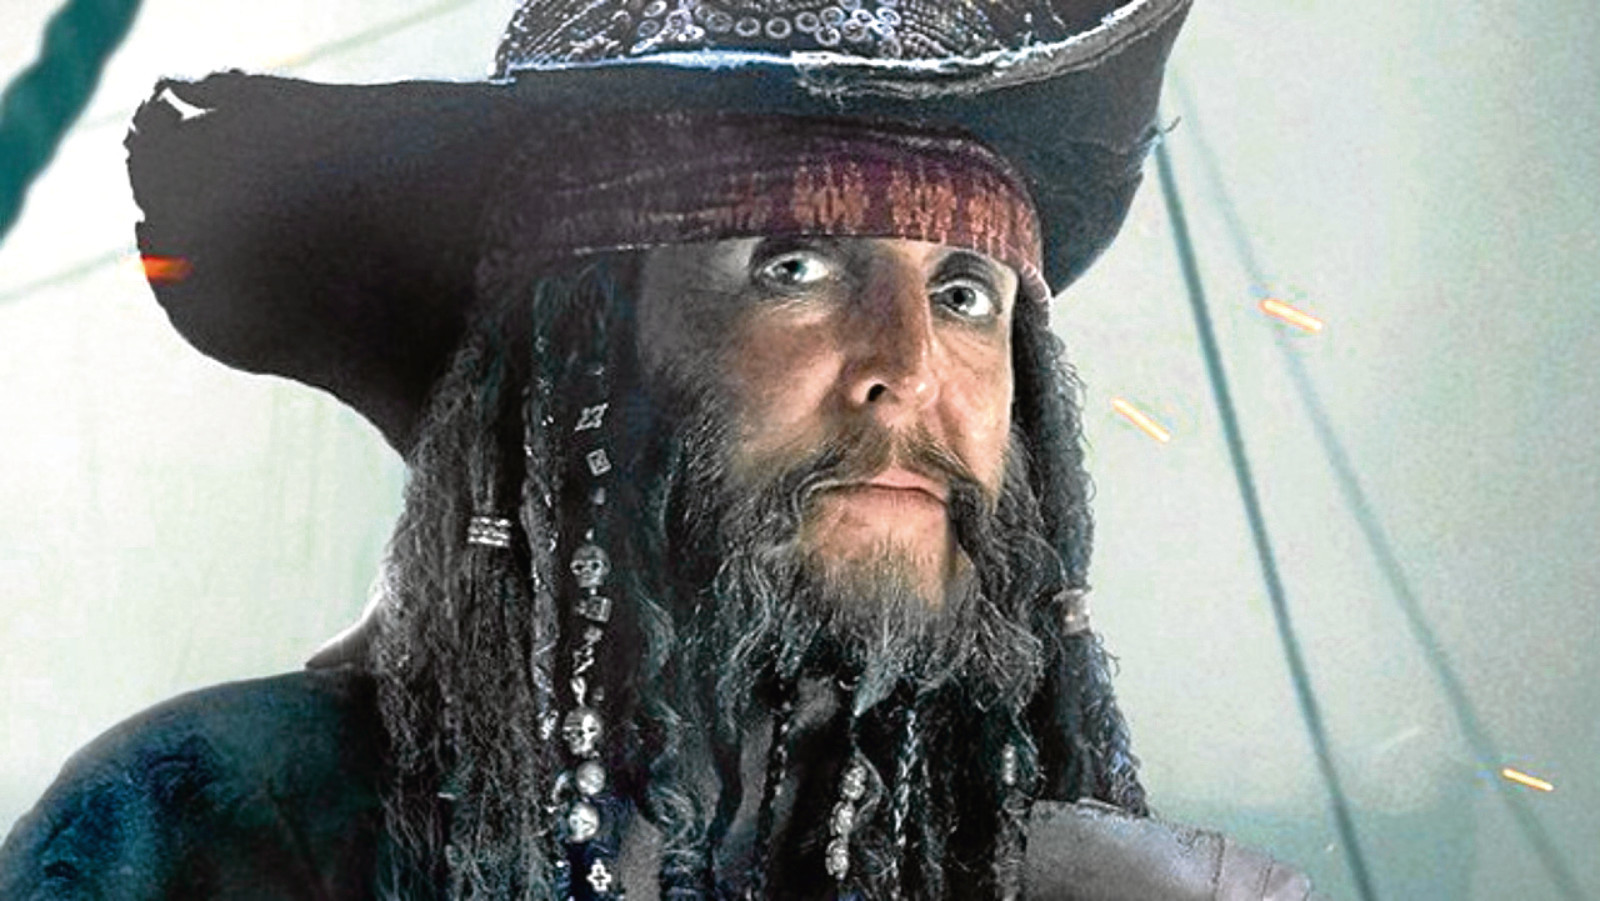 Paul McCartney in the new Pirates of the Caribbean film